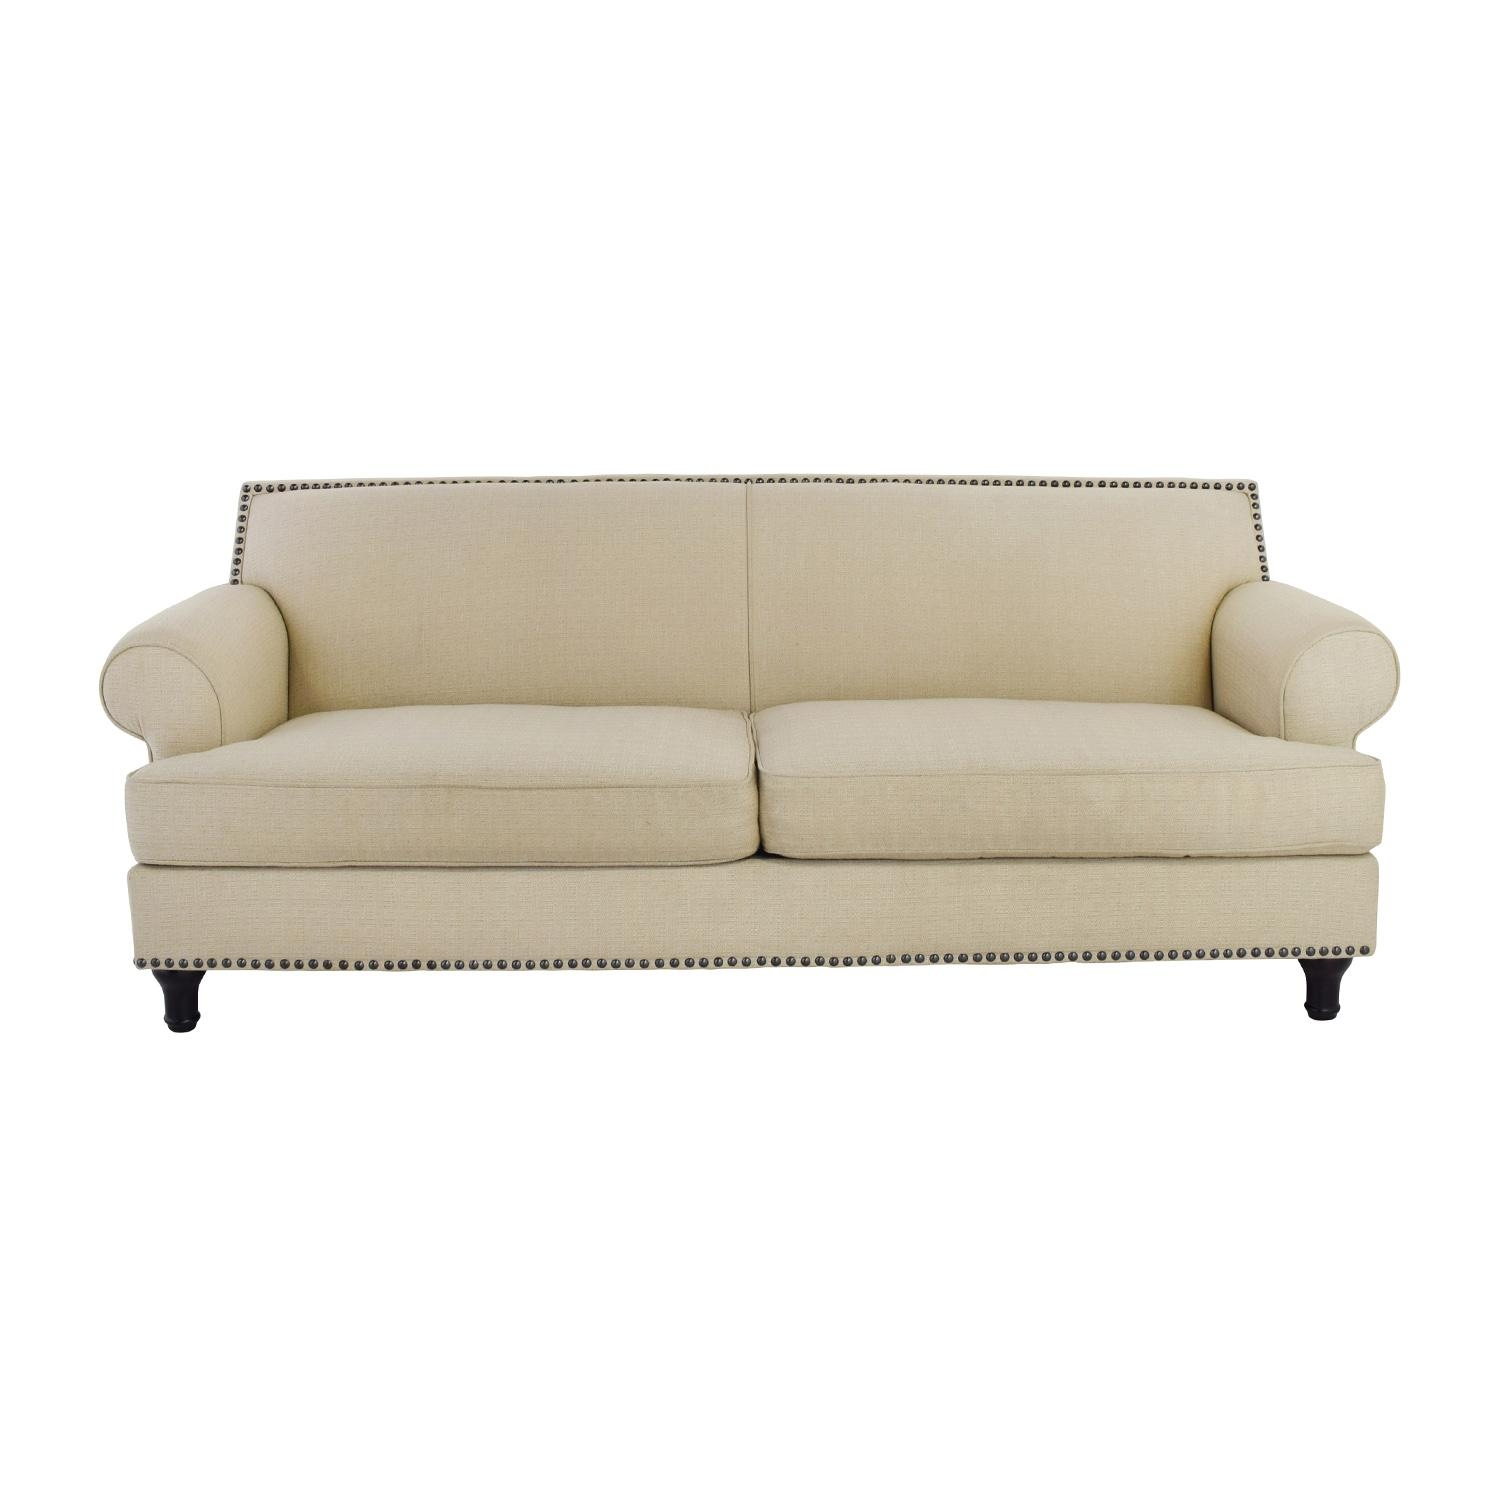 48% Off – Pier 1 Pier 1 Carmen Tan Couch With Studs / Sofas Within Pier One Carmen Sofas (View 7 of 20)